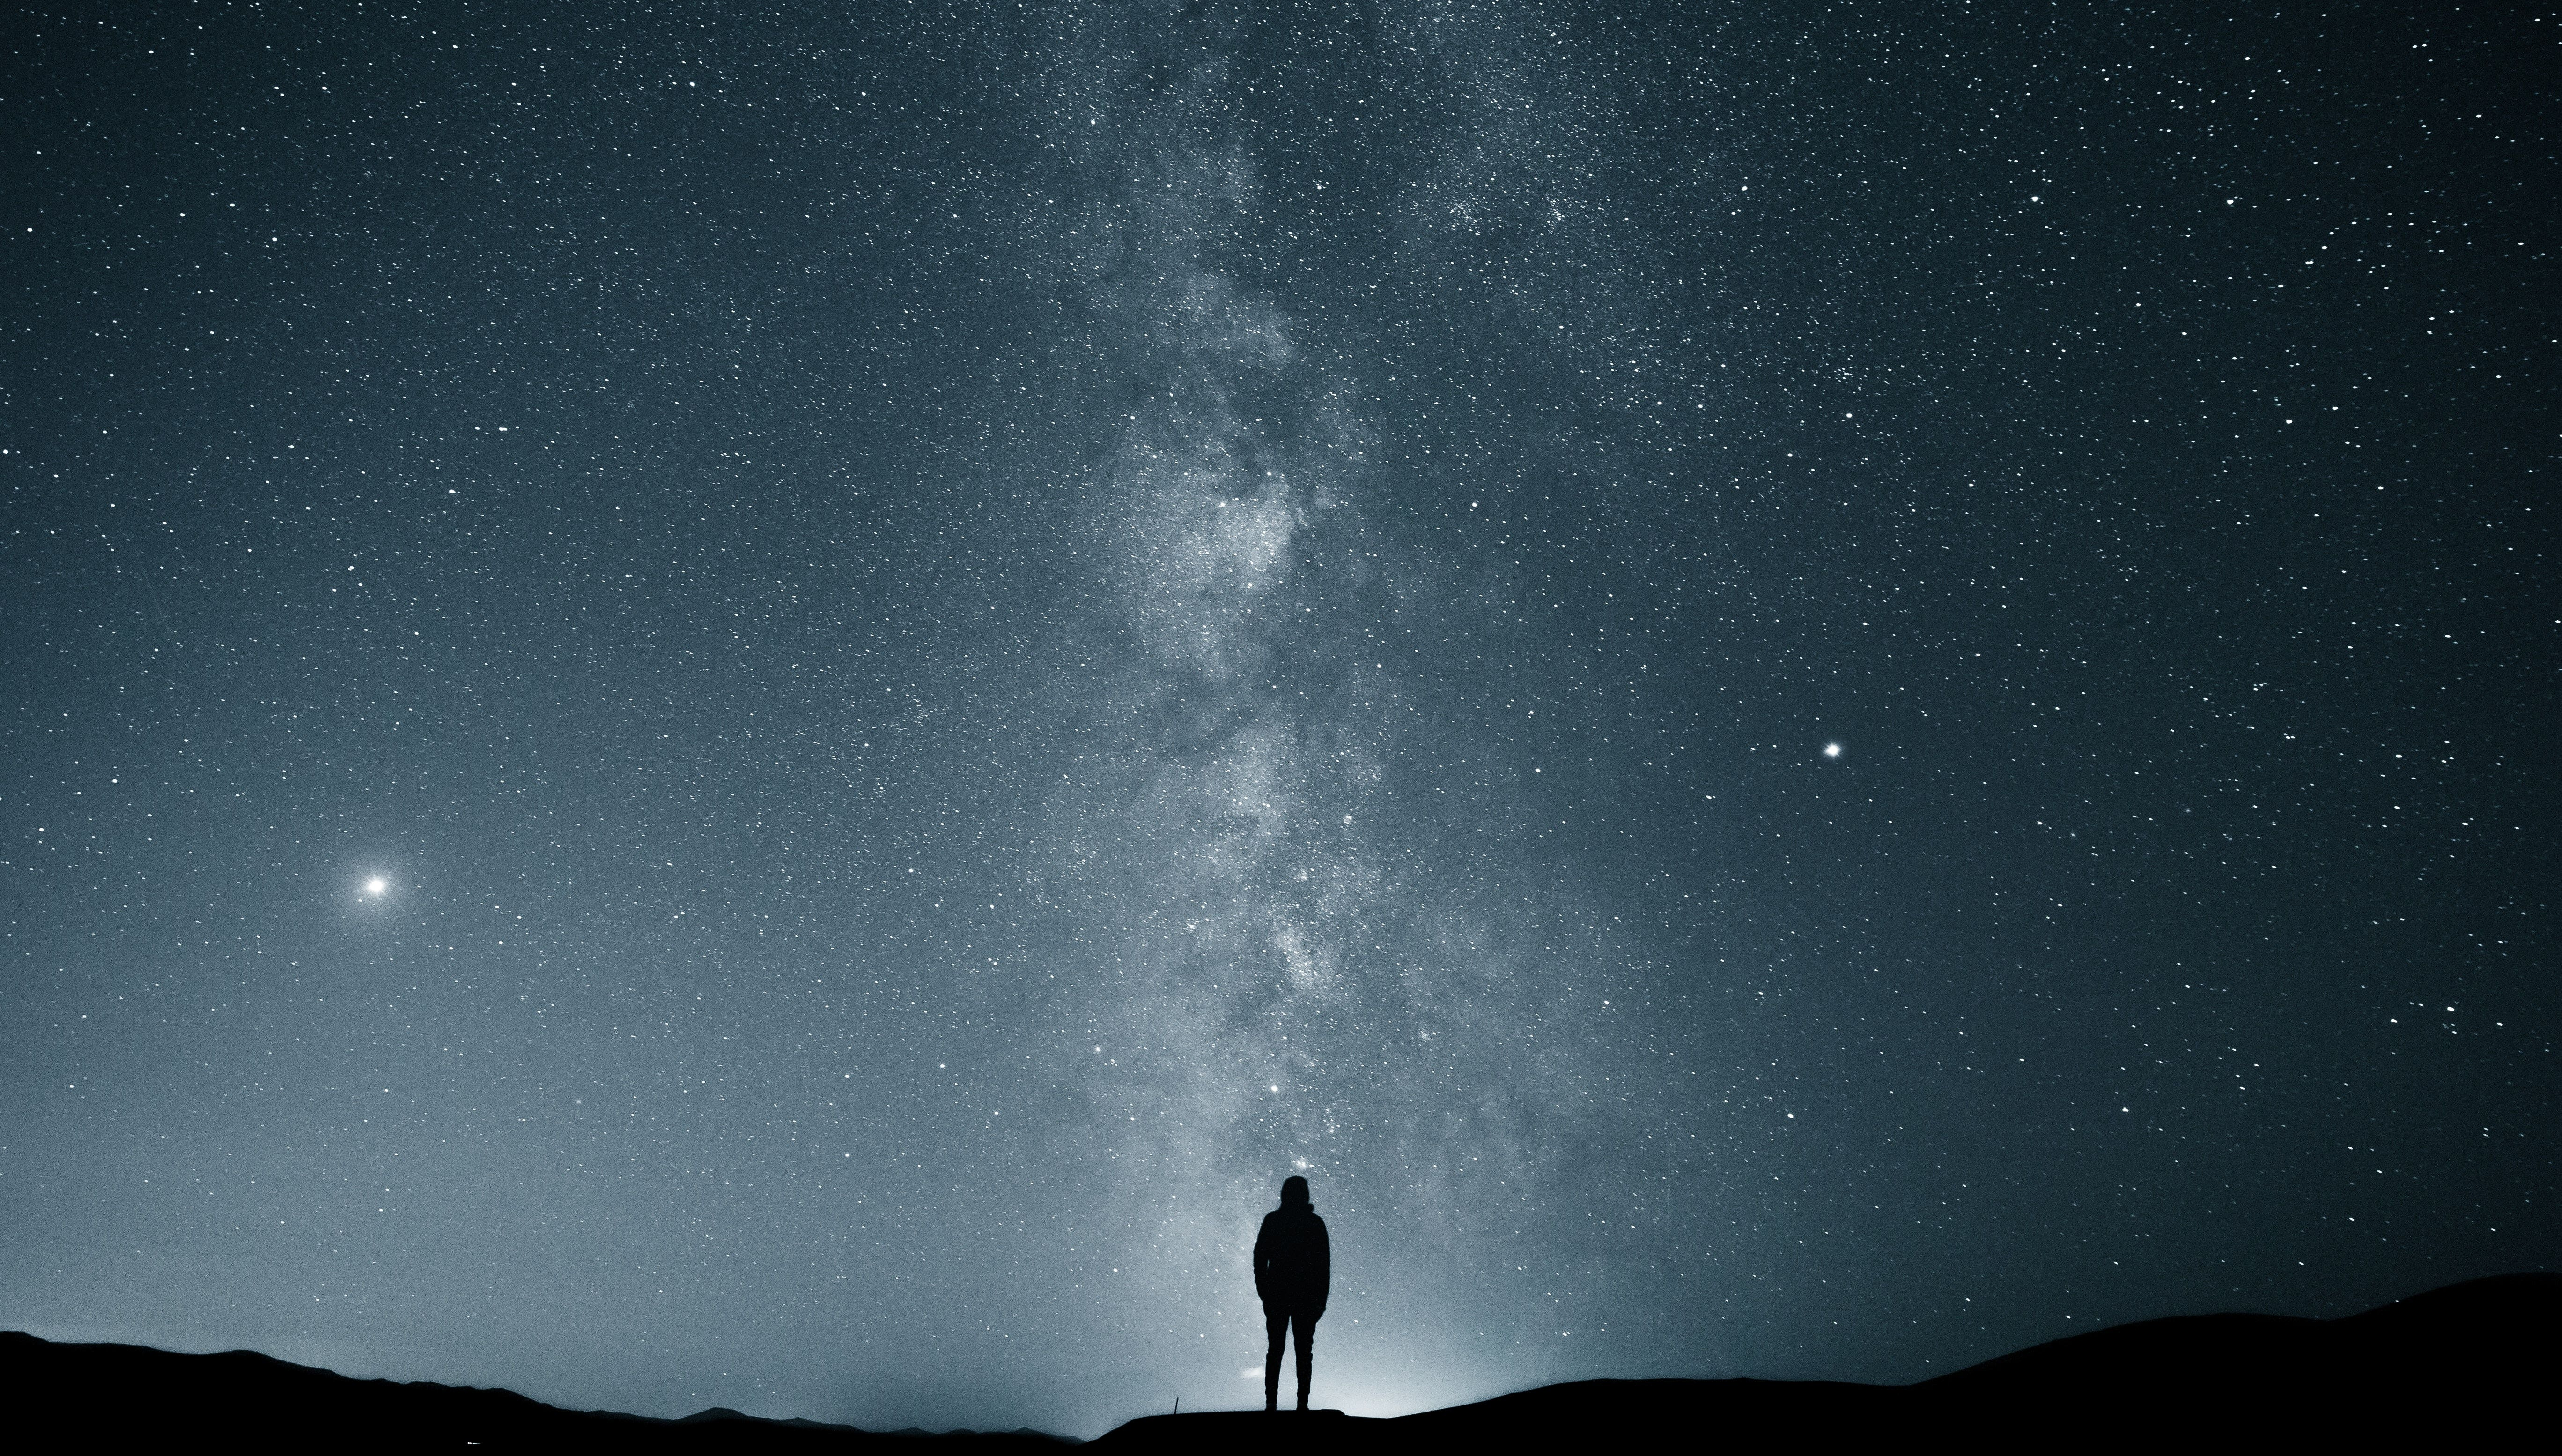 Using Long Exposure in Astrophotography